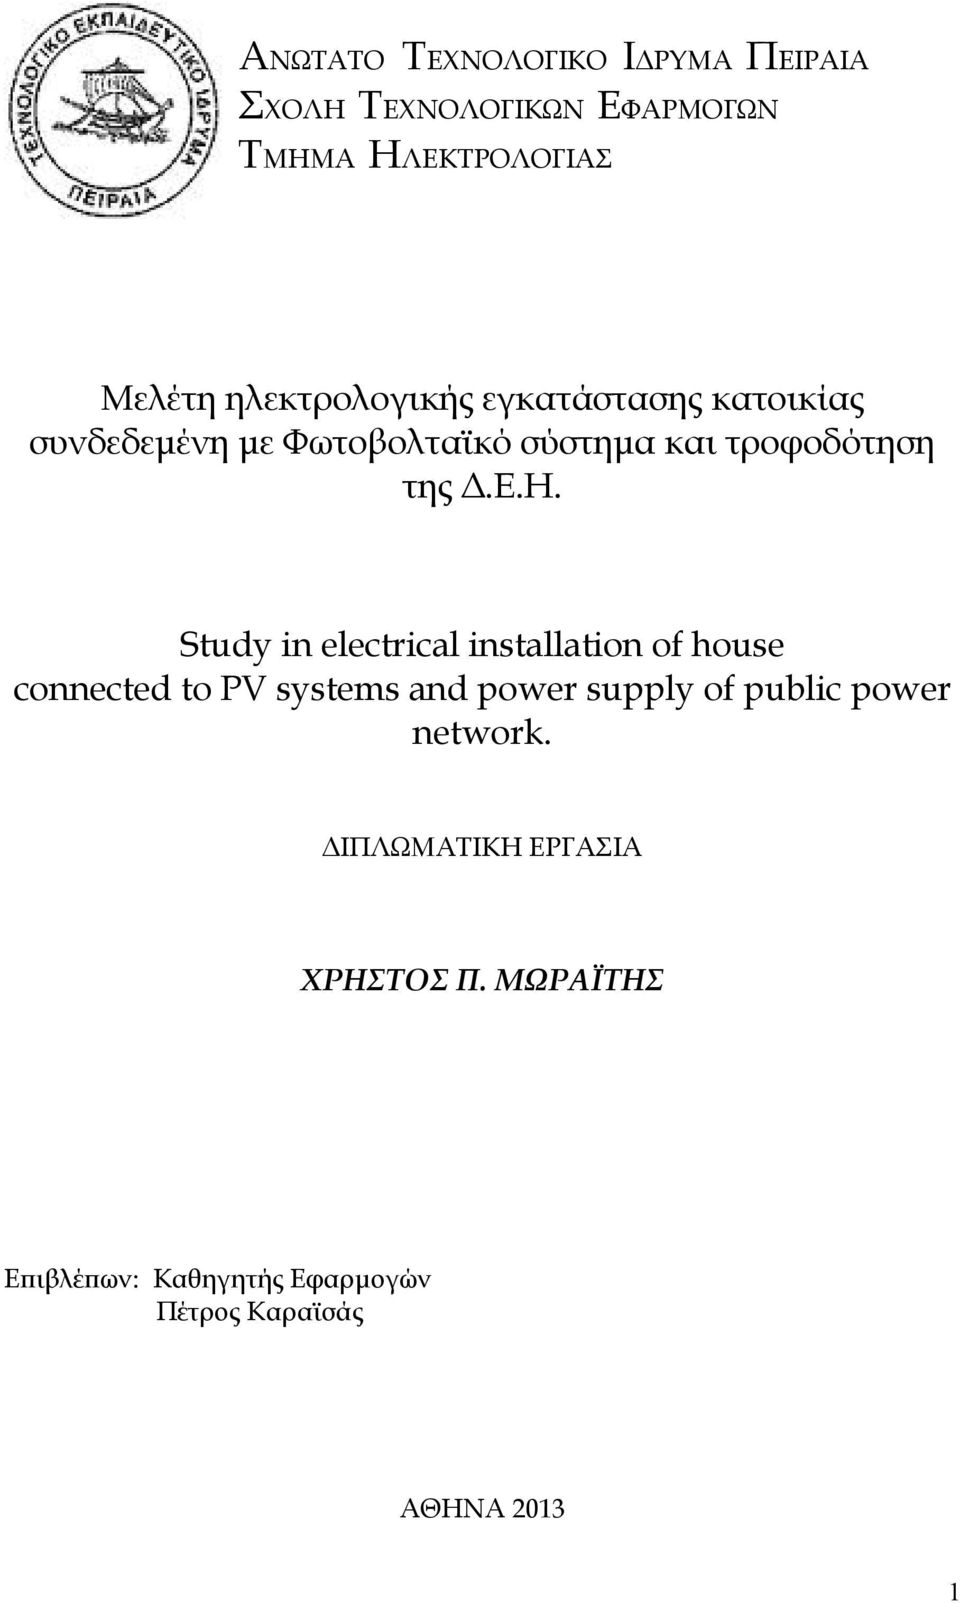 Study in electrical installation of house connected to PV systems and power supply of public power